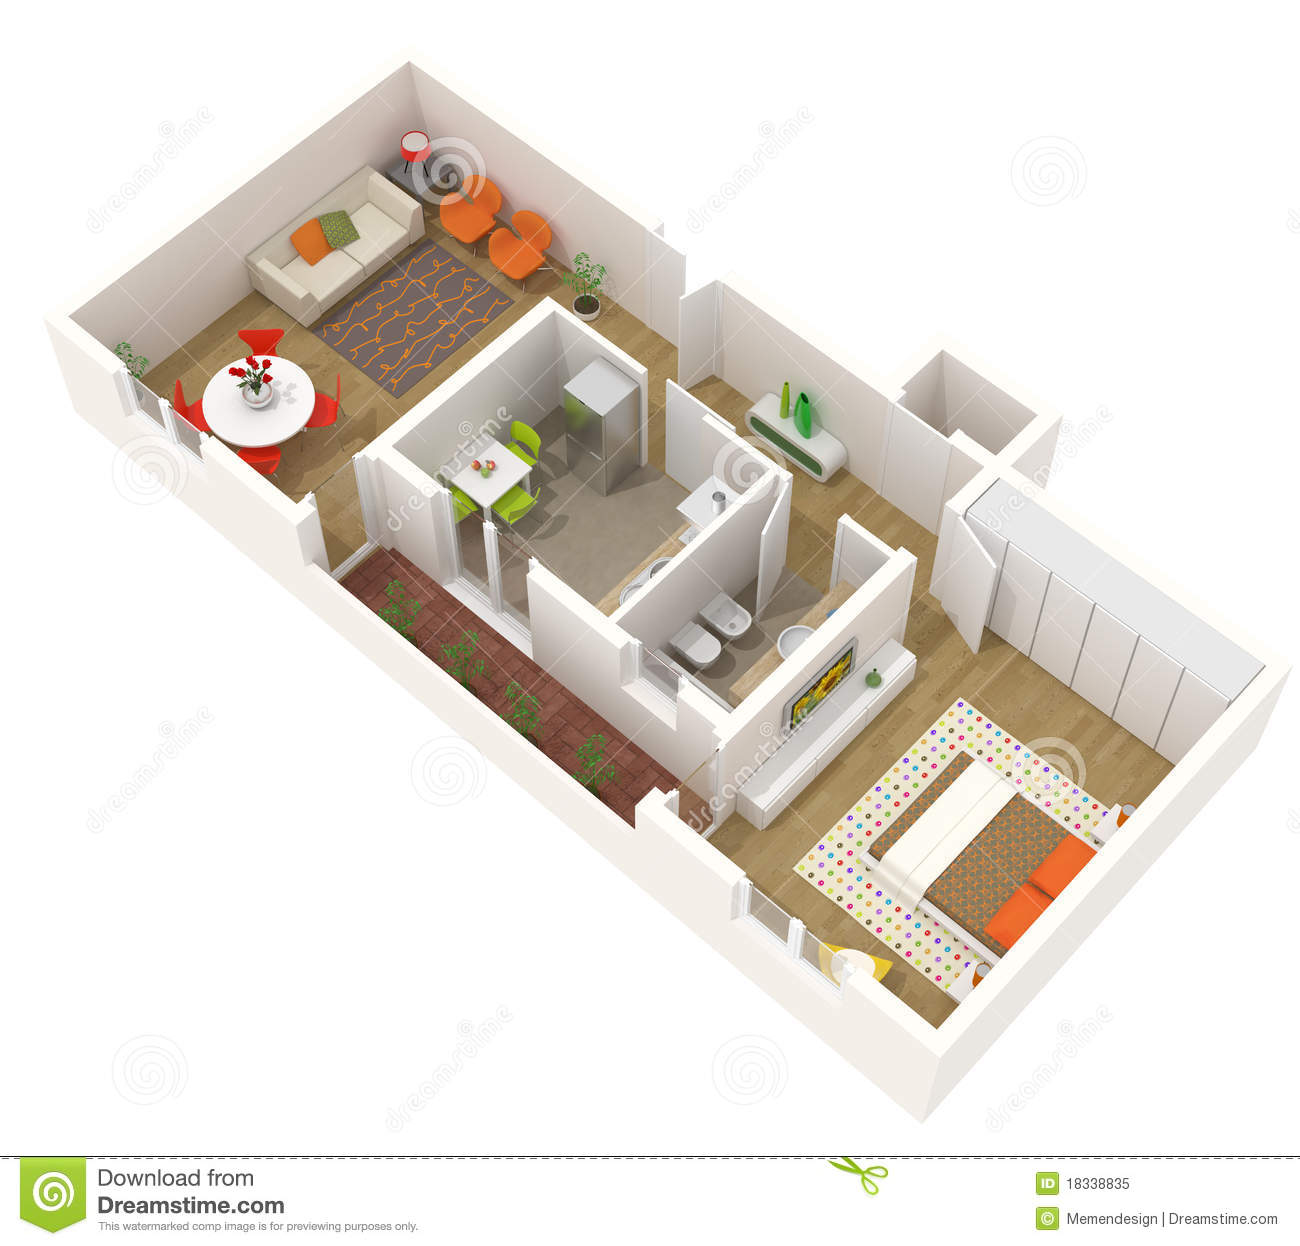 Apartment design 3d floor plan stock illustration for Apartment design plans 3d